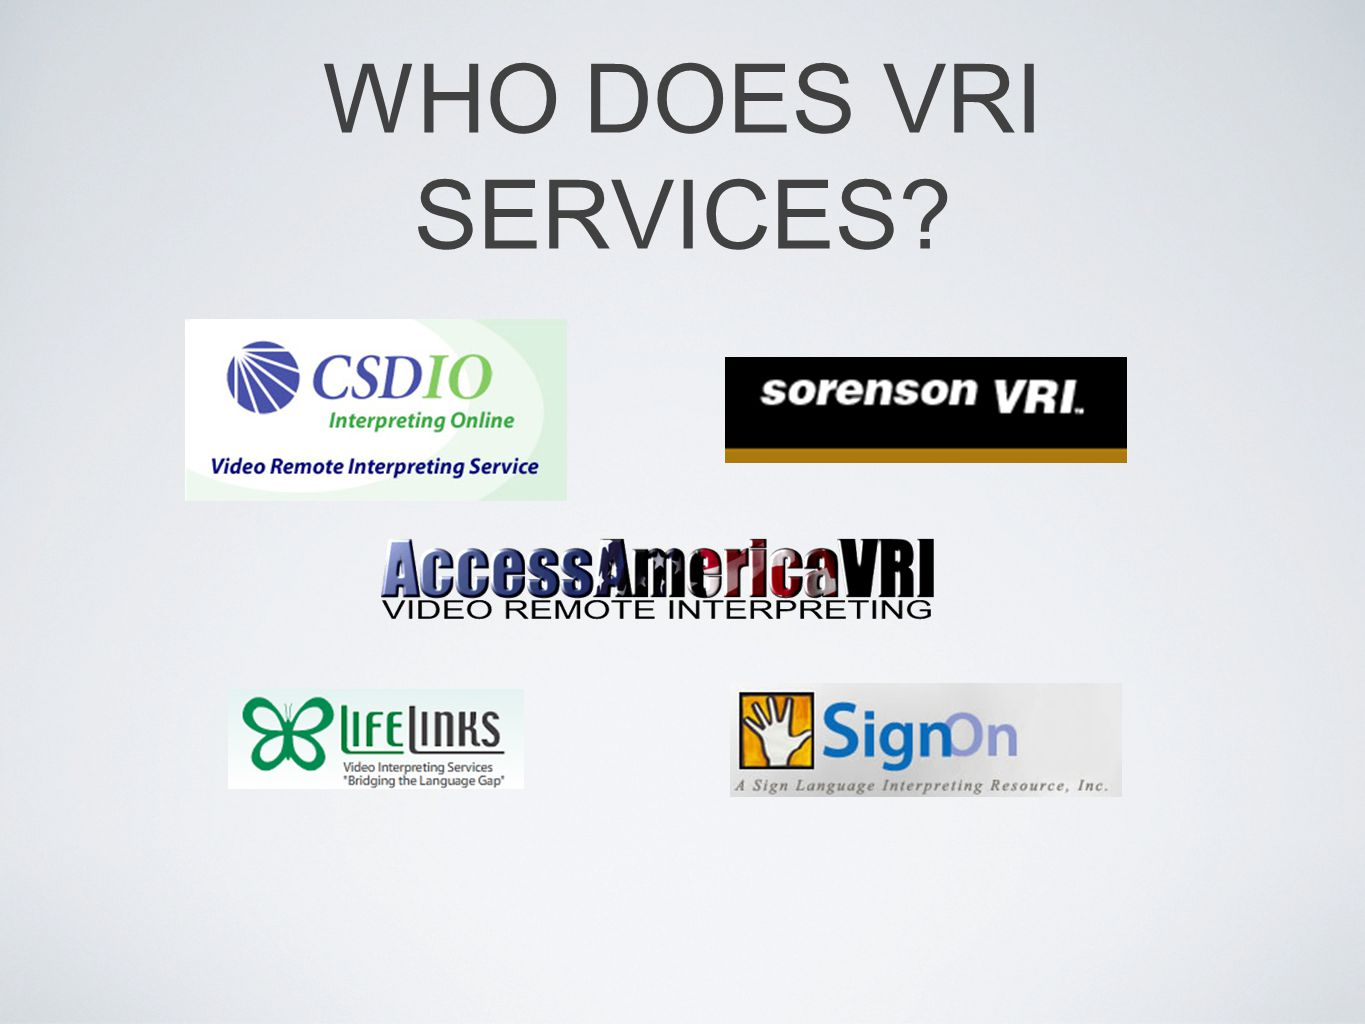 WHO DOES VRI SERVICES